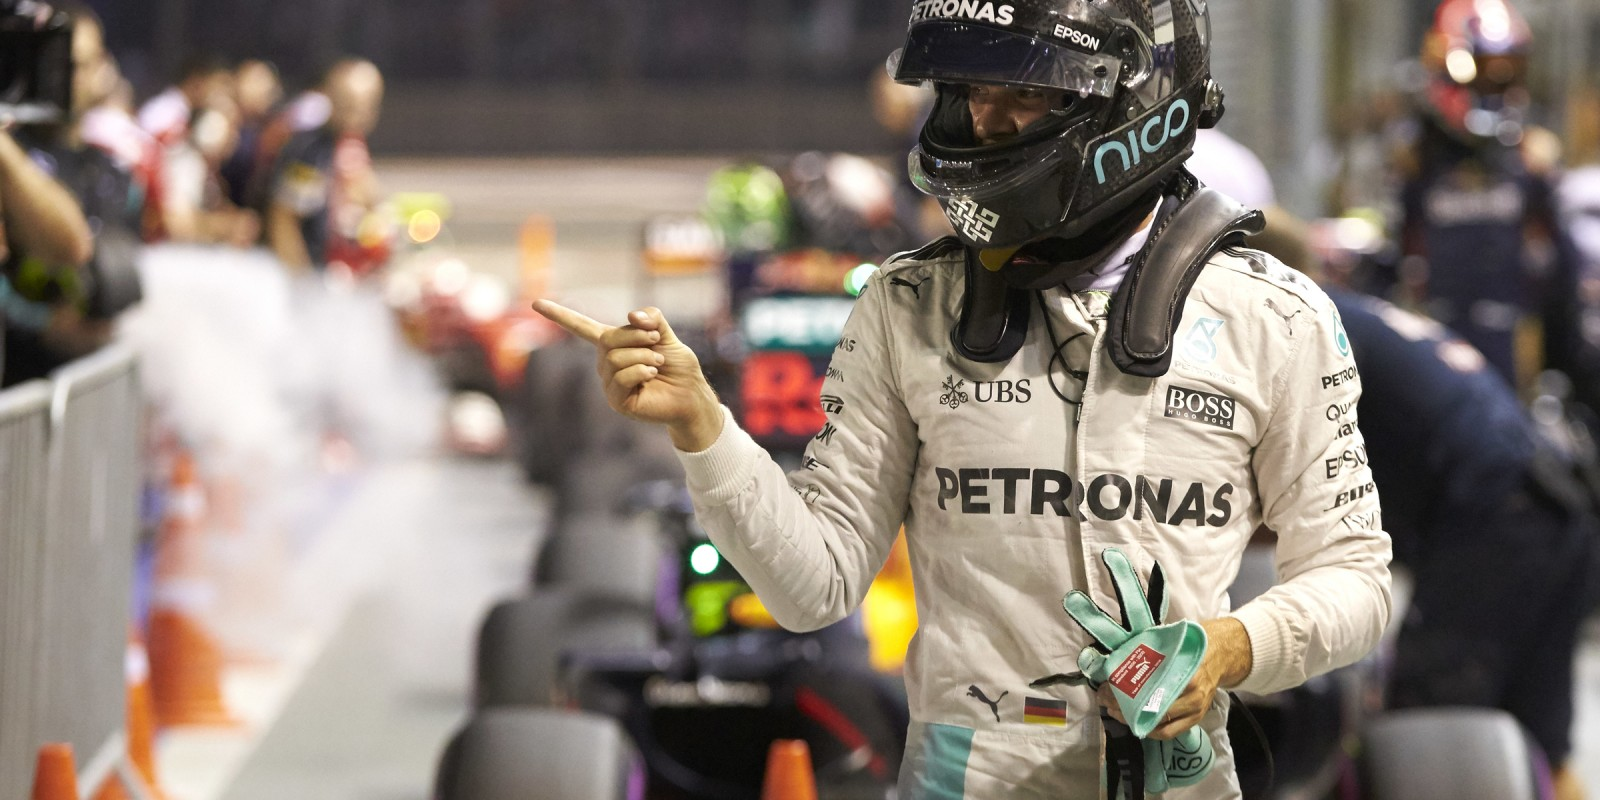 Qualifying images from the 2016 Singapore Grand Prix